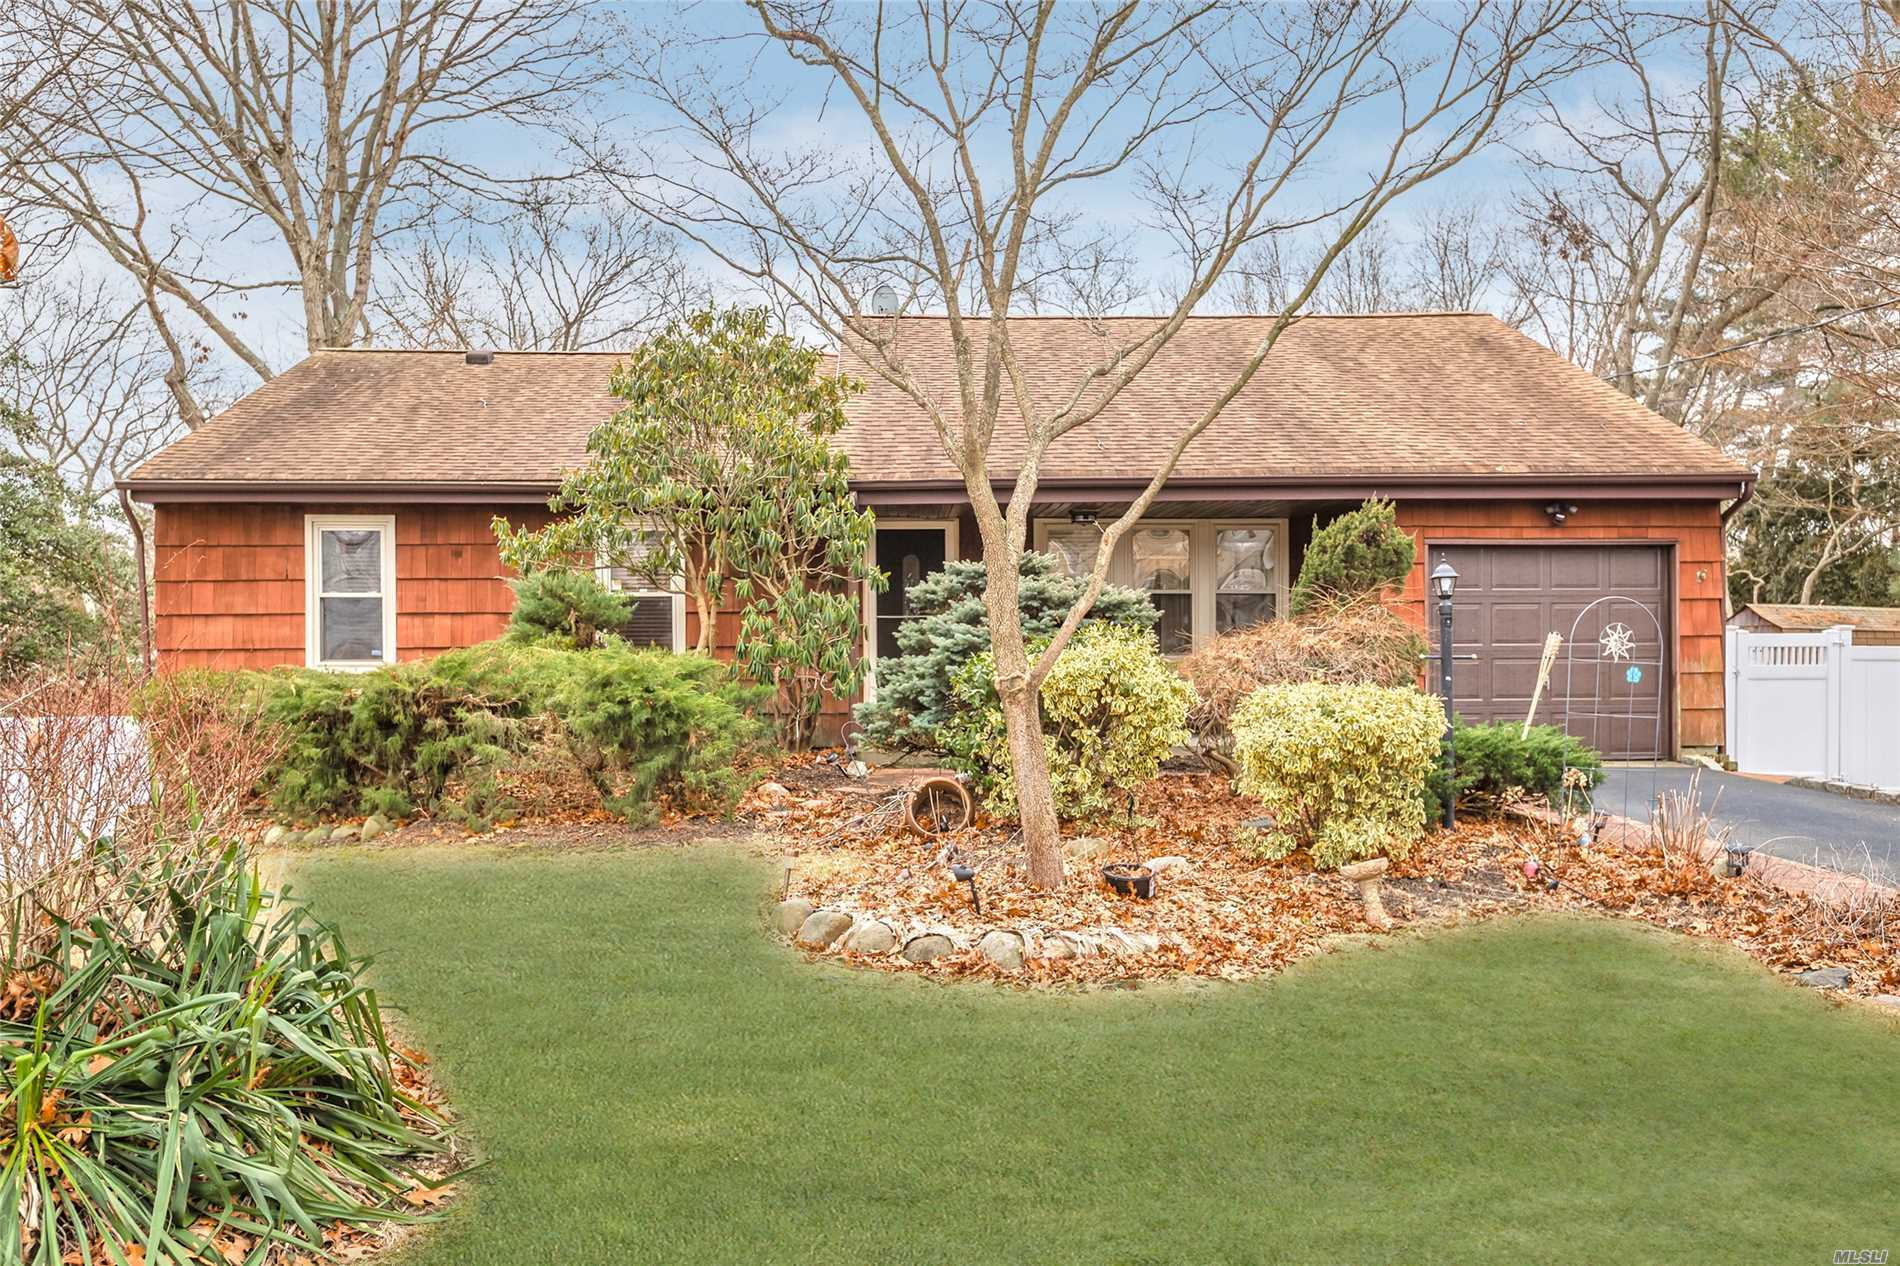 Put This Home On Your Shopping List, Features: Eik W/Cathedral Ceiling And Skylight, 3 F/Bath, Hardwood Floors, Ceramic Tiles,  New Washer And Dryer, Den With Sliding Glass Door To Yard, Igs, Bi Level Deck, Fenced Yard, Dead End Street.  Do Not Pass This Homeup